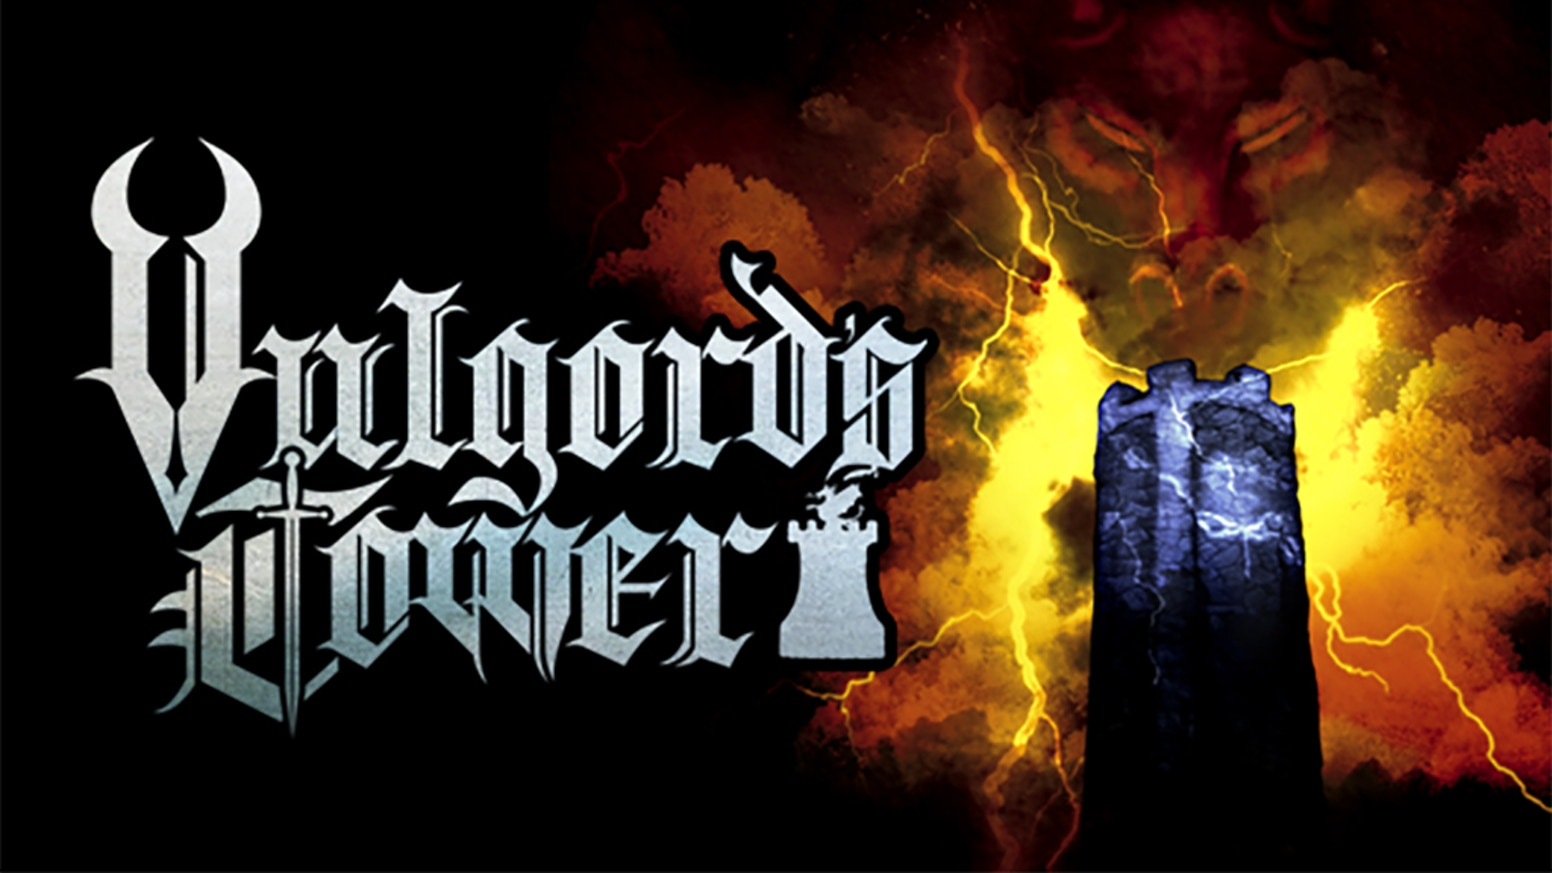 A fantasy adventure video game of whimsy, woe, and wizardry! Your mission is simple. Storm the tower and defeat Vulgord!